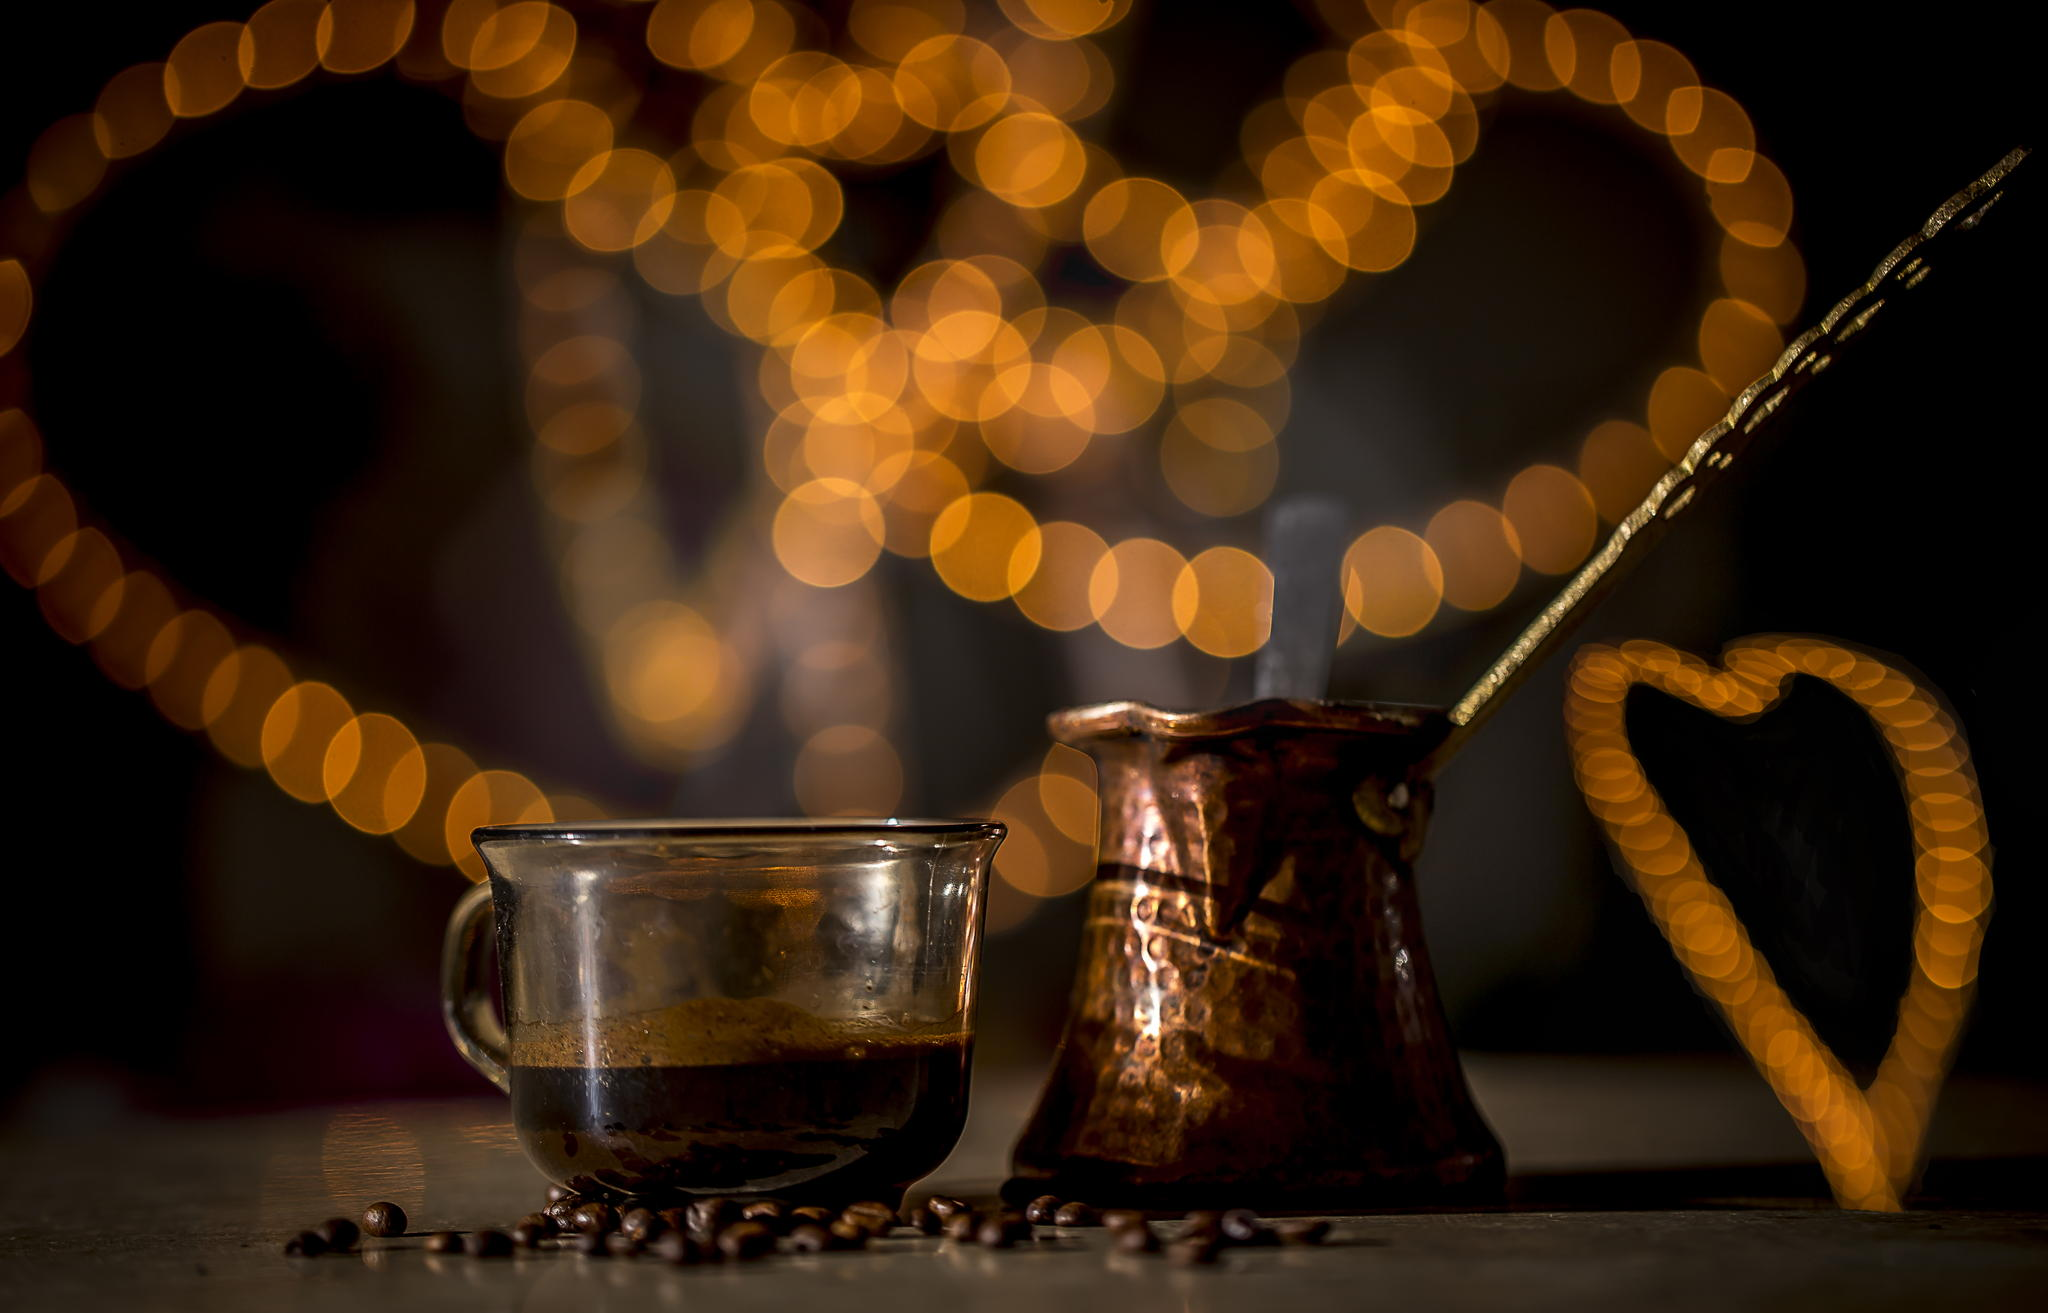 Weekly Contest: 33 Beautiful Bokeh Photos! Plus, A New Theme